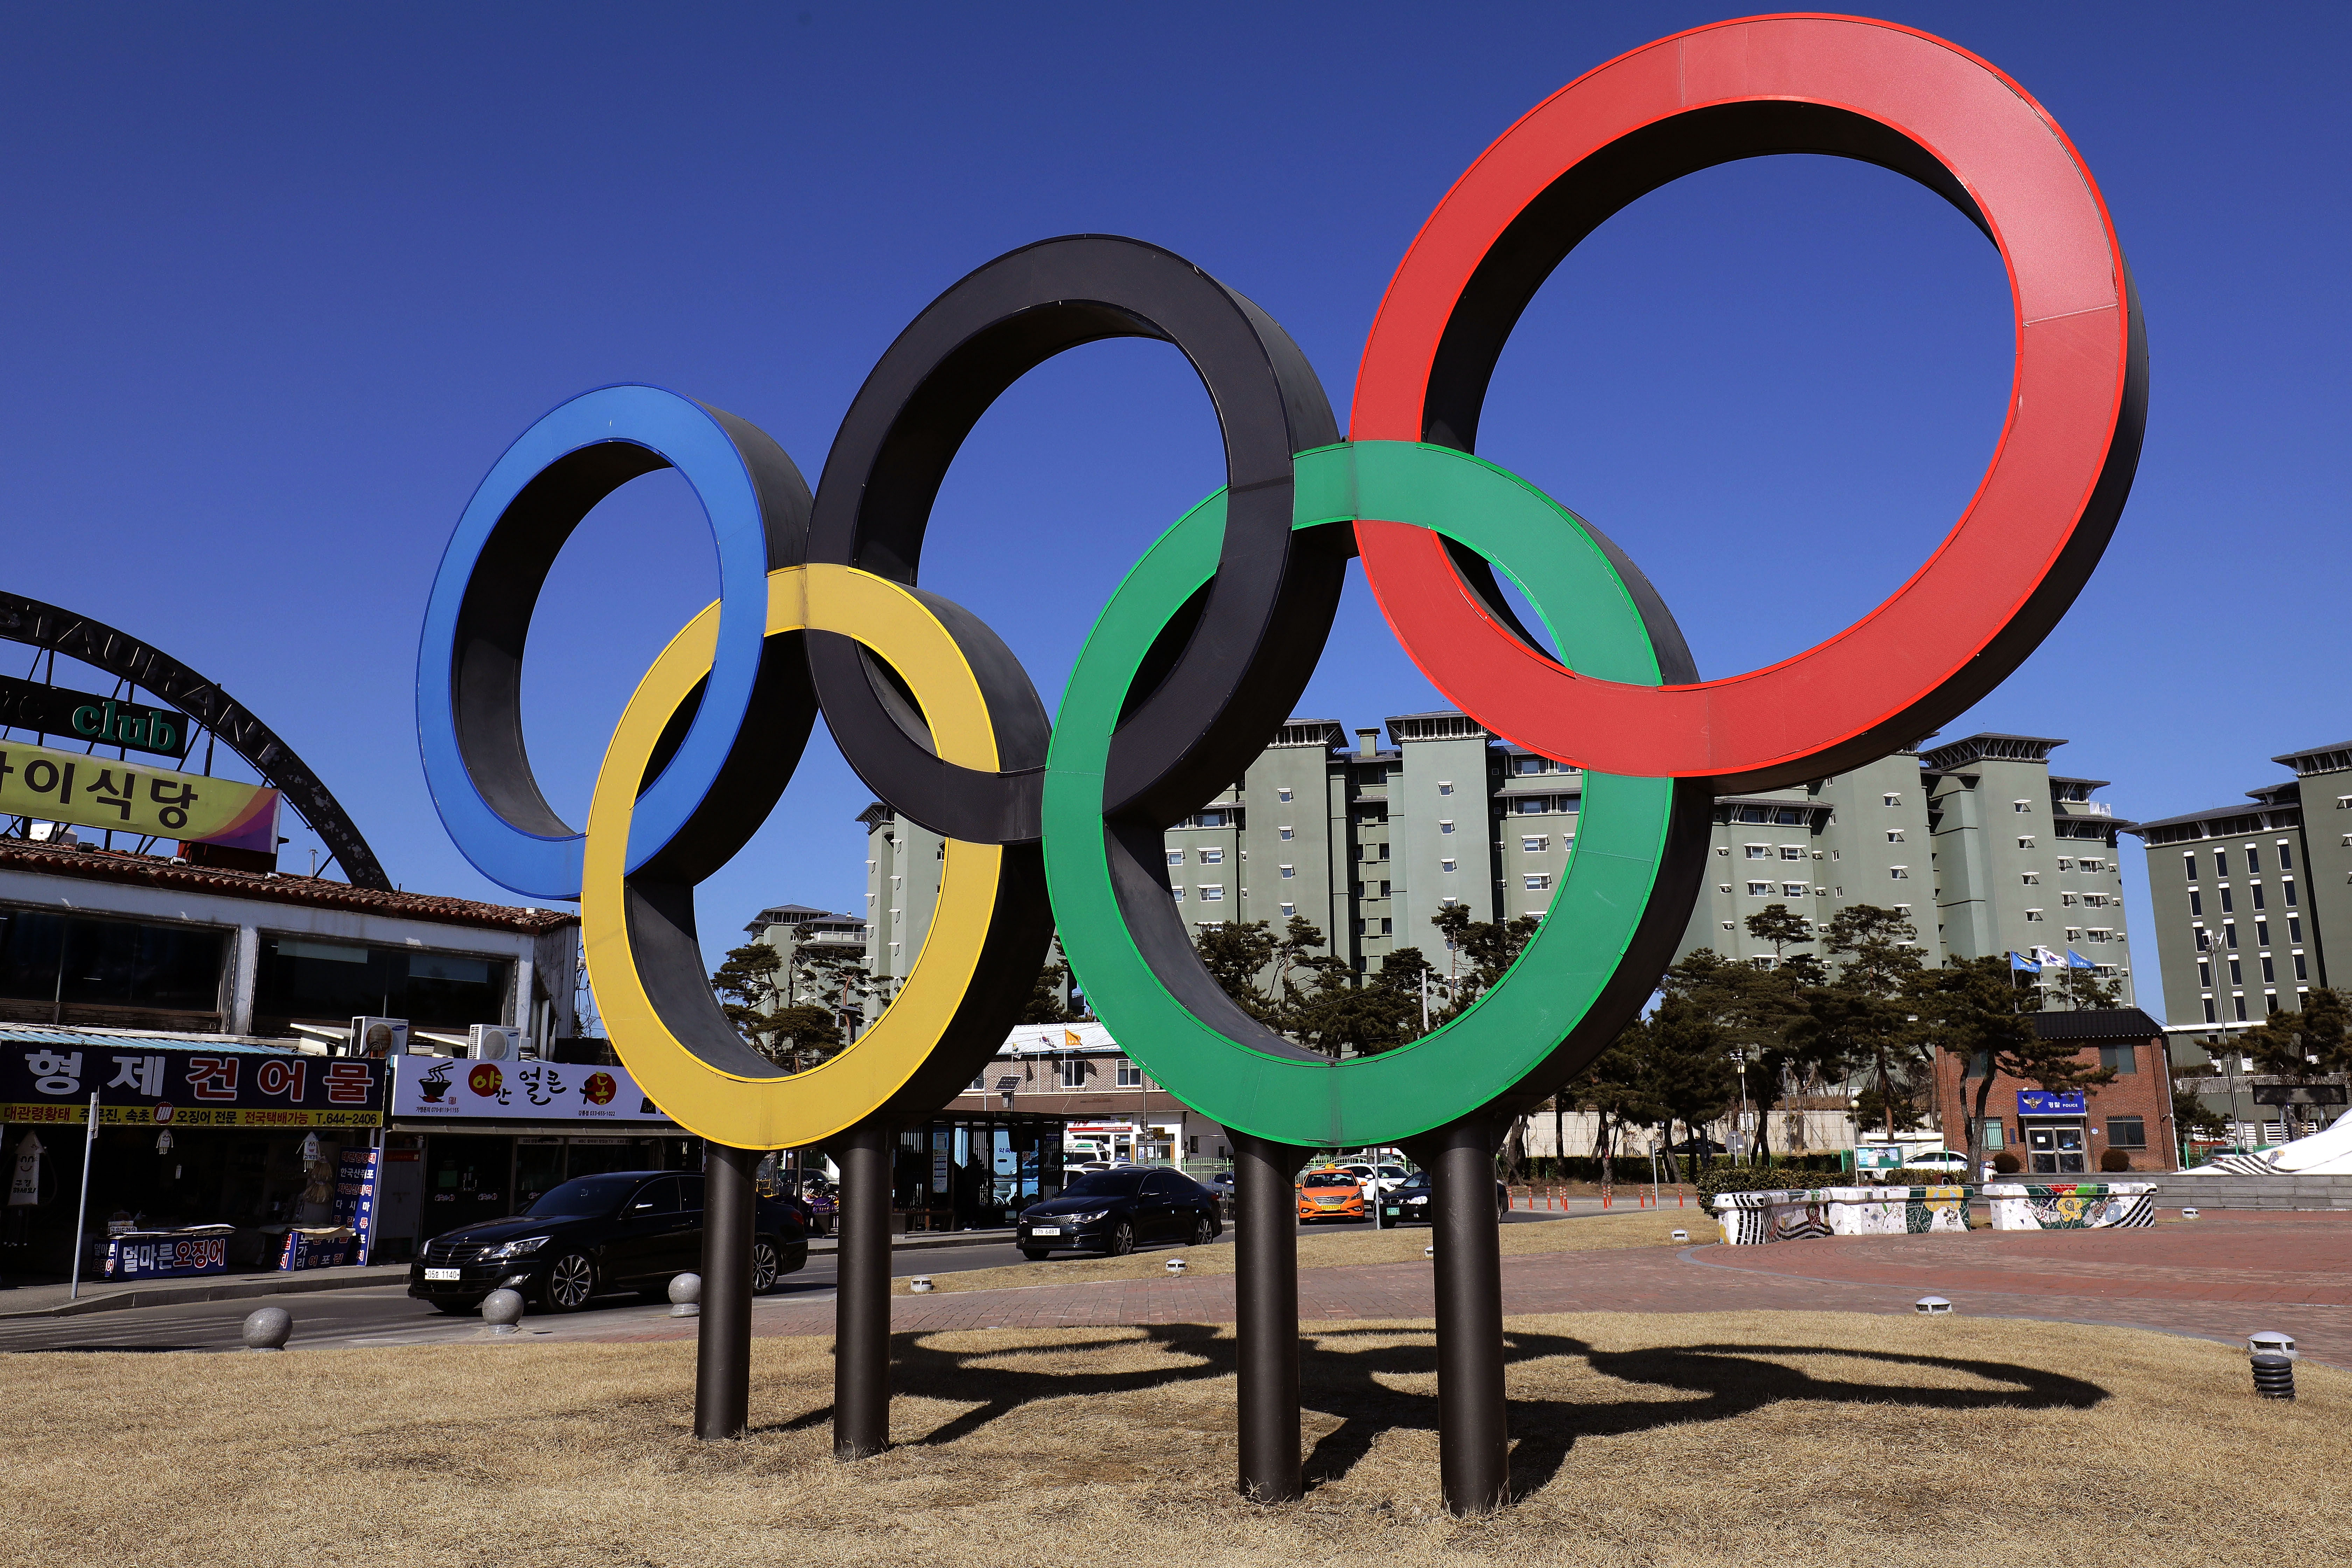 The Olympic rings is seen in Gangneung town, near the venue for the Speed Skating, Figure Skating and Ice Hockey ahead of PyeongChang 2018 Winter Olympic Games on February 8, 2017 in Gangneung, South Korea.